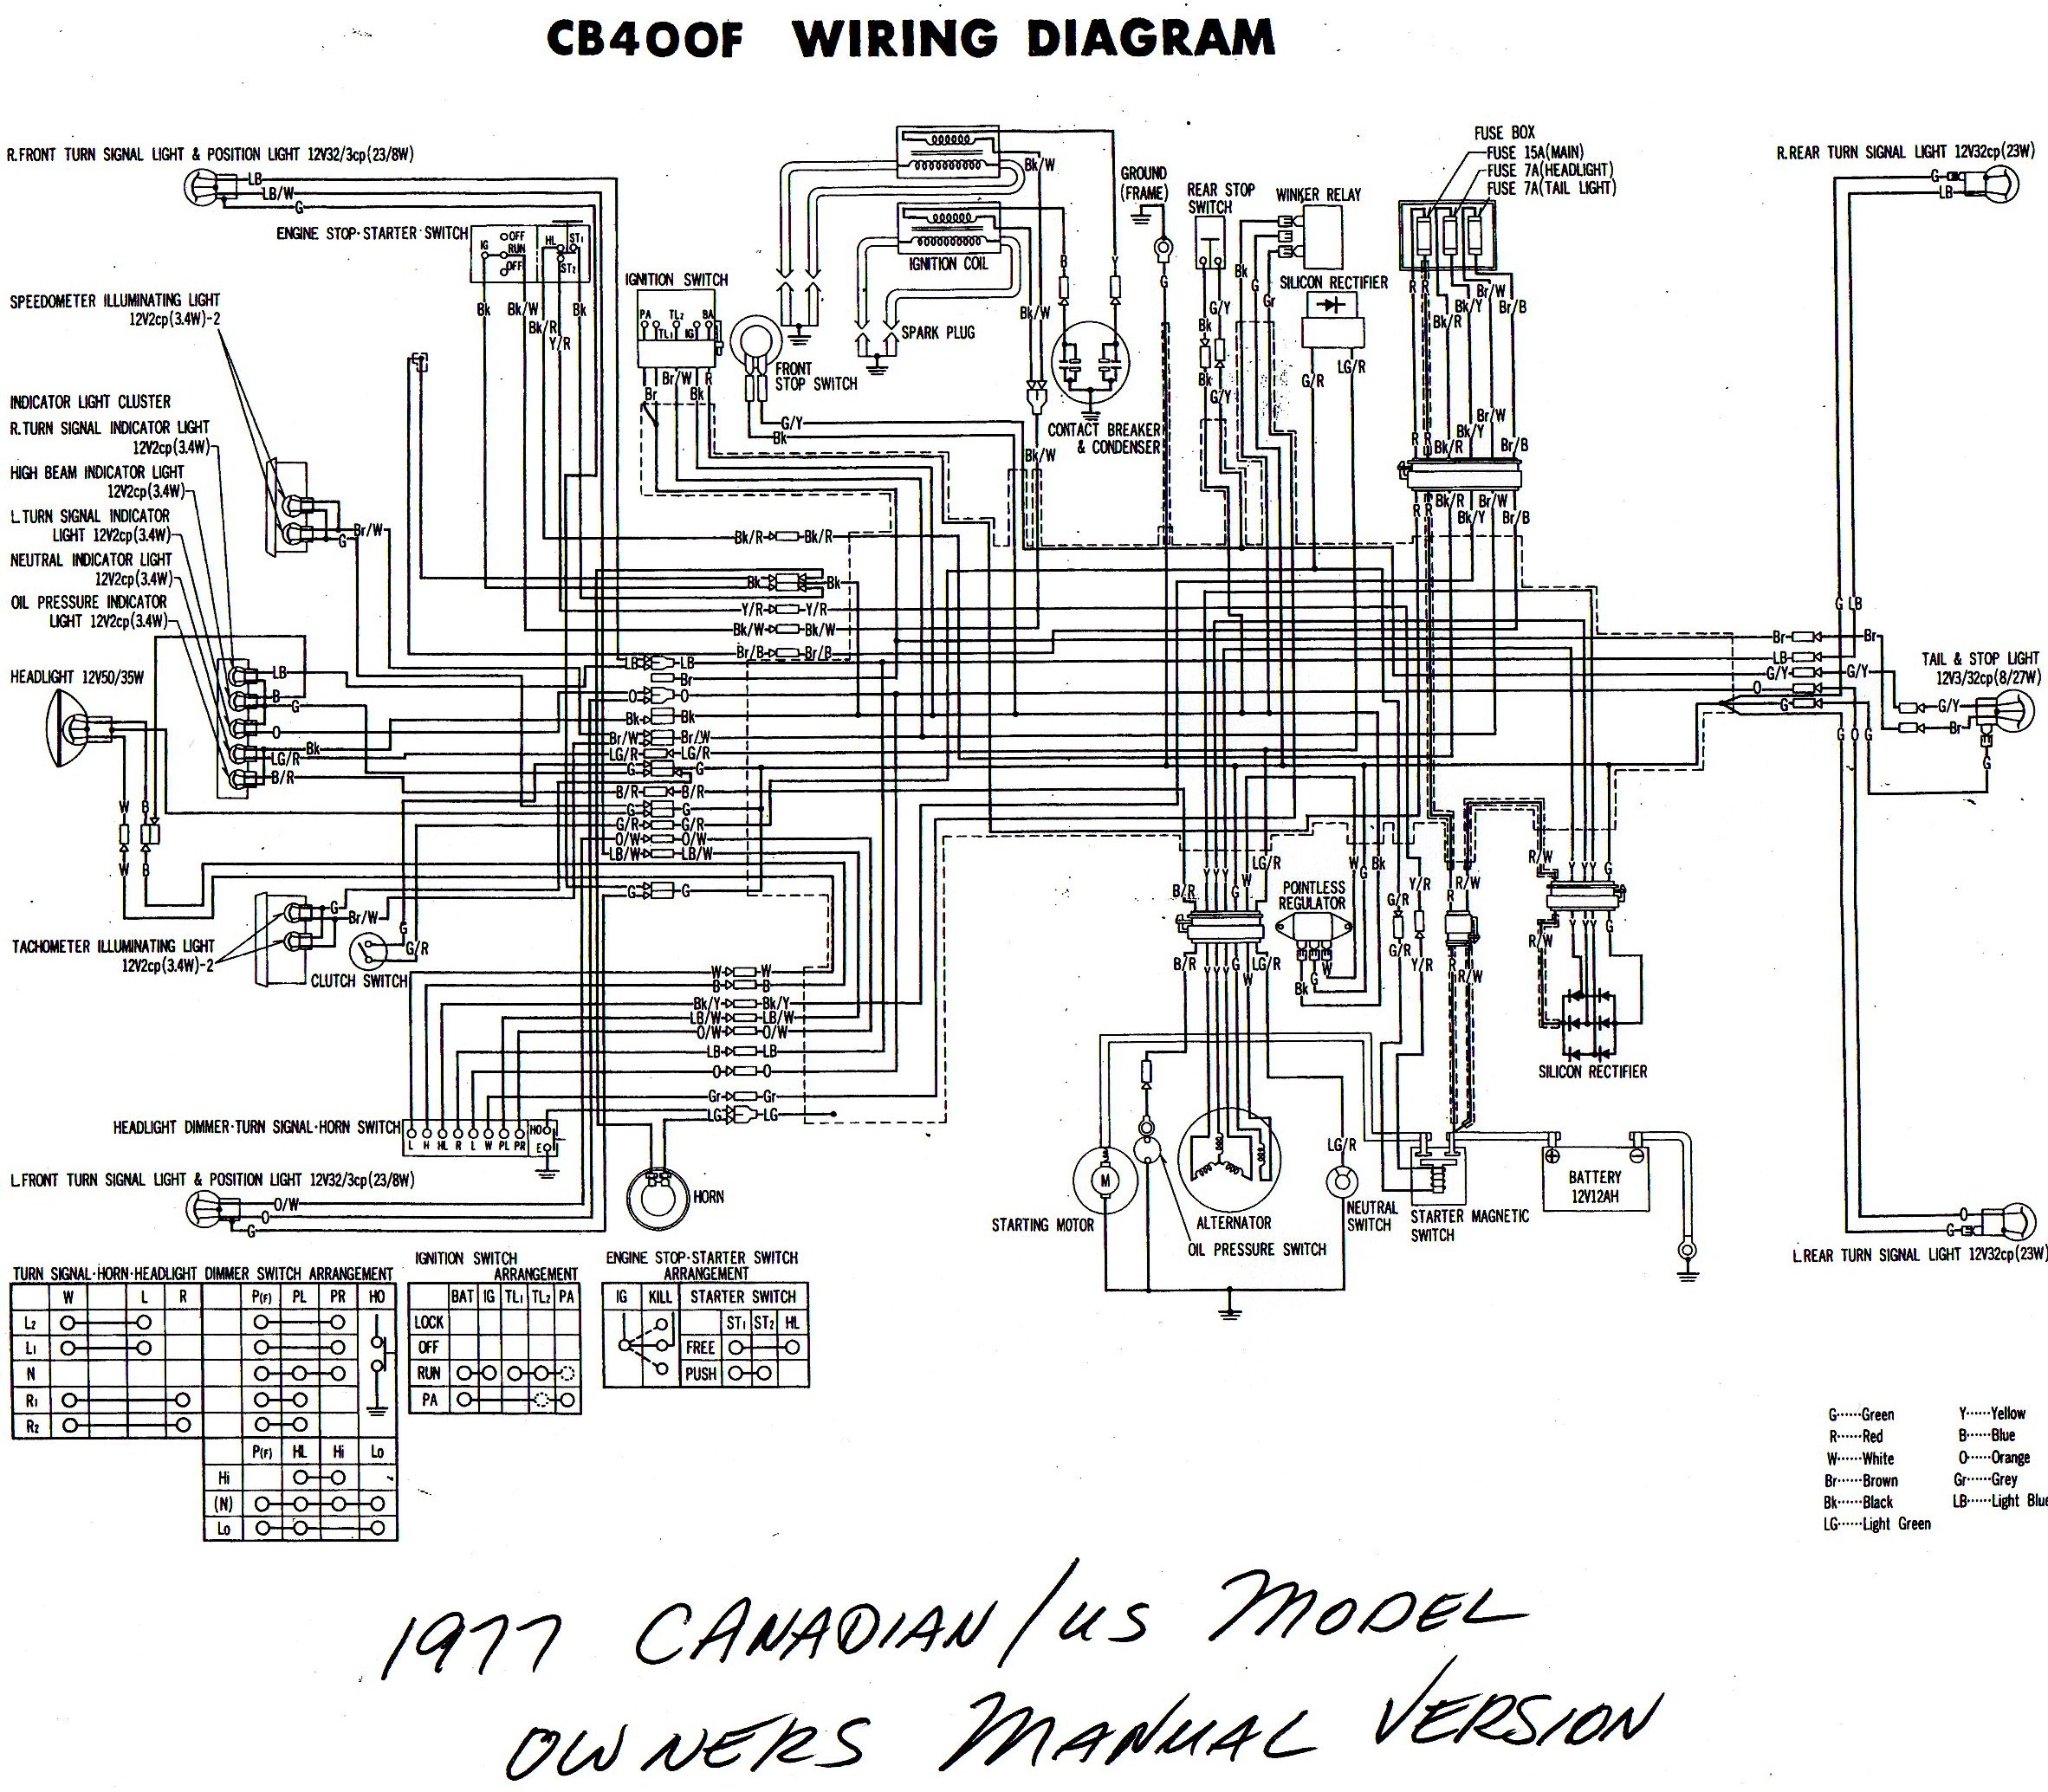 WD40077 cb400f www.k-four.net wiring diagram at suagrazia.org